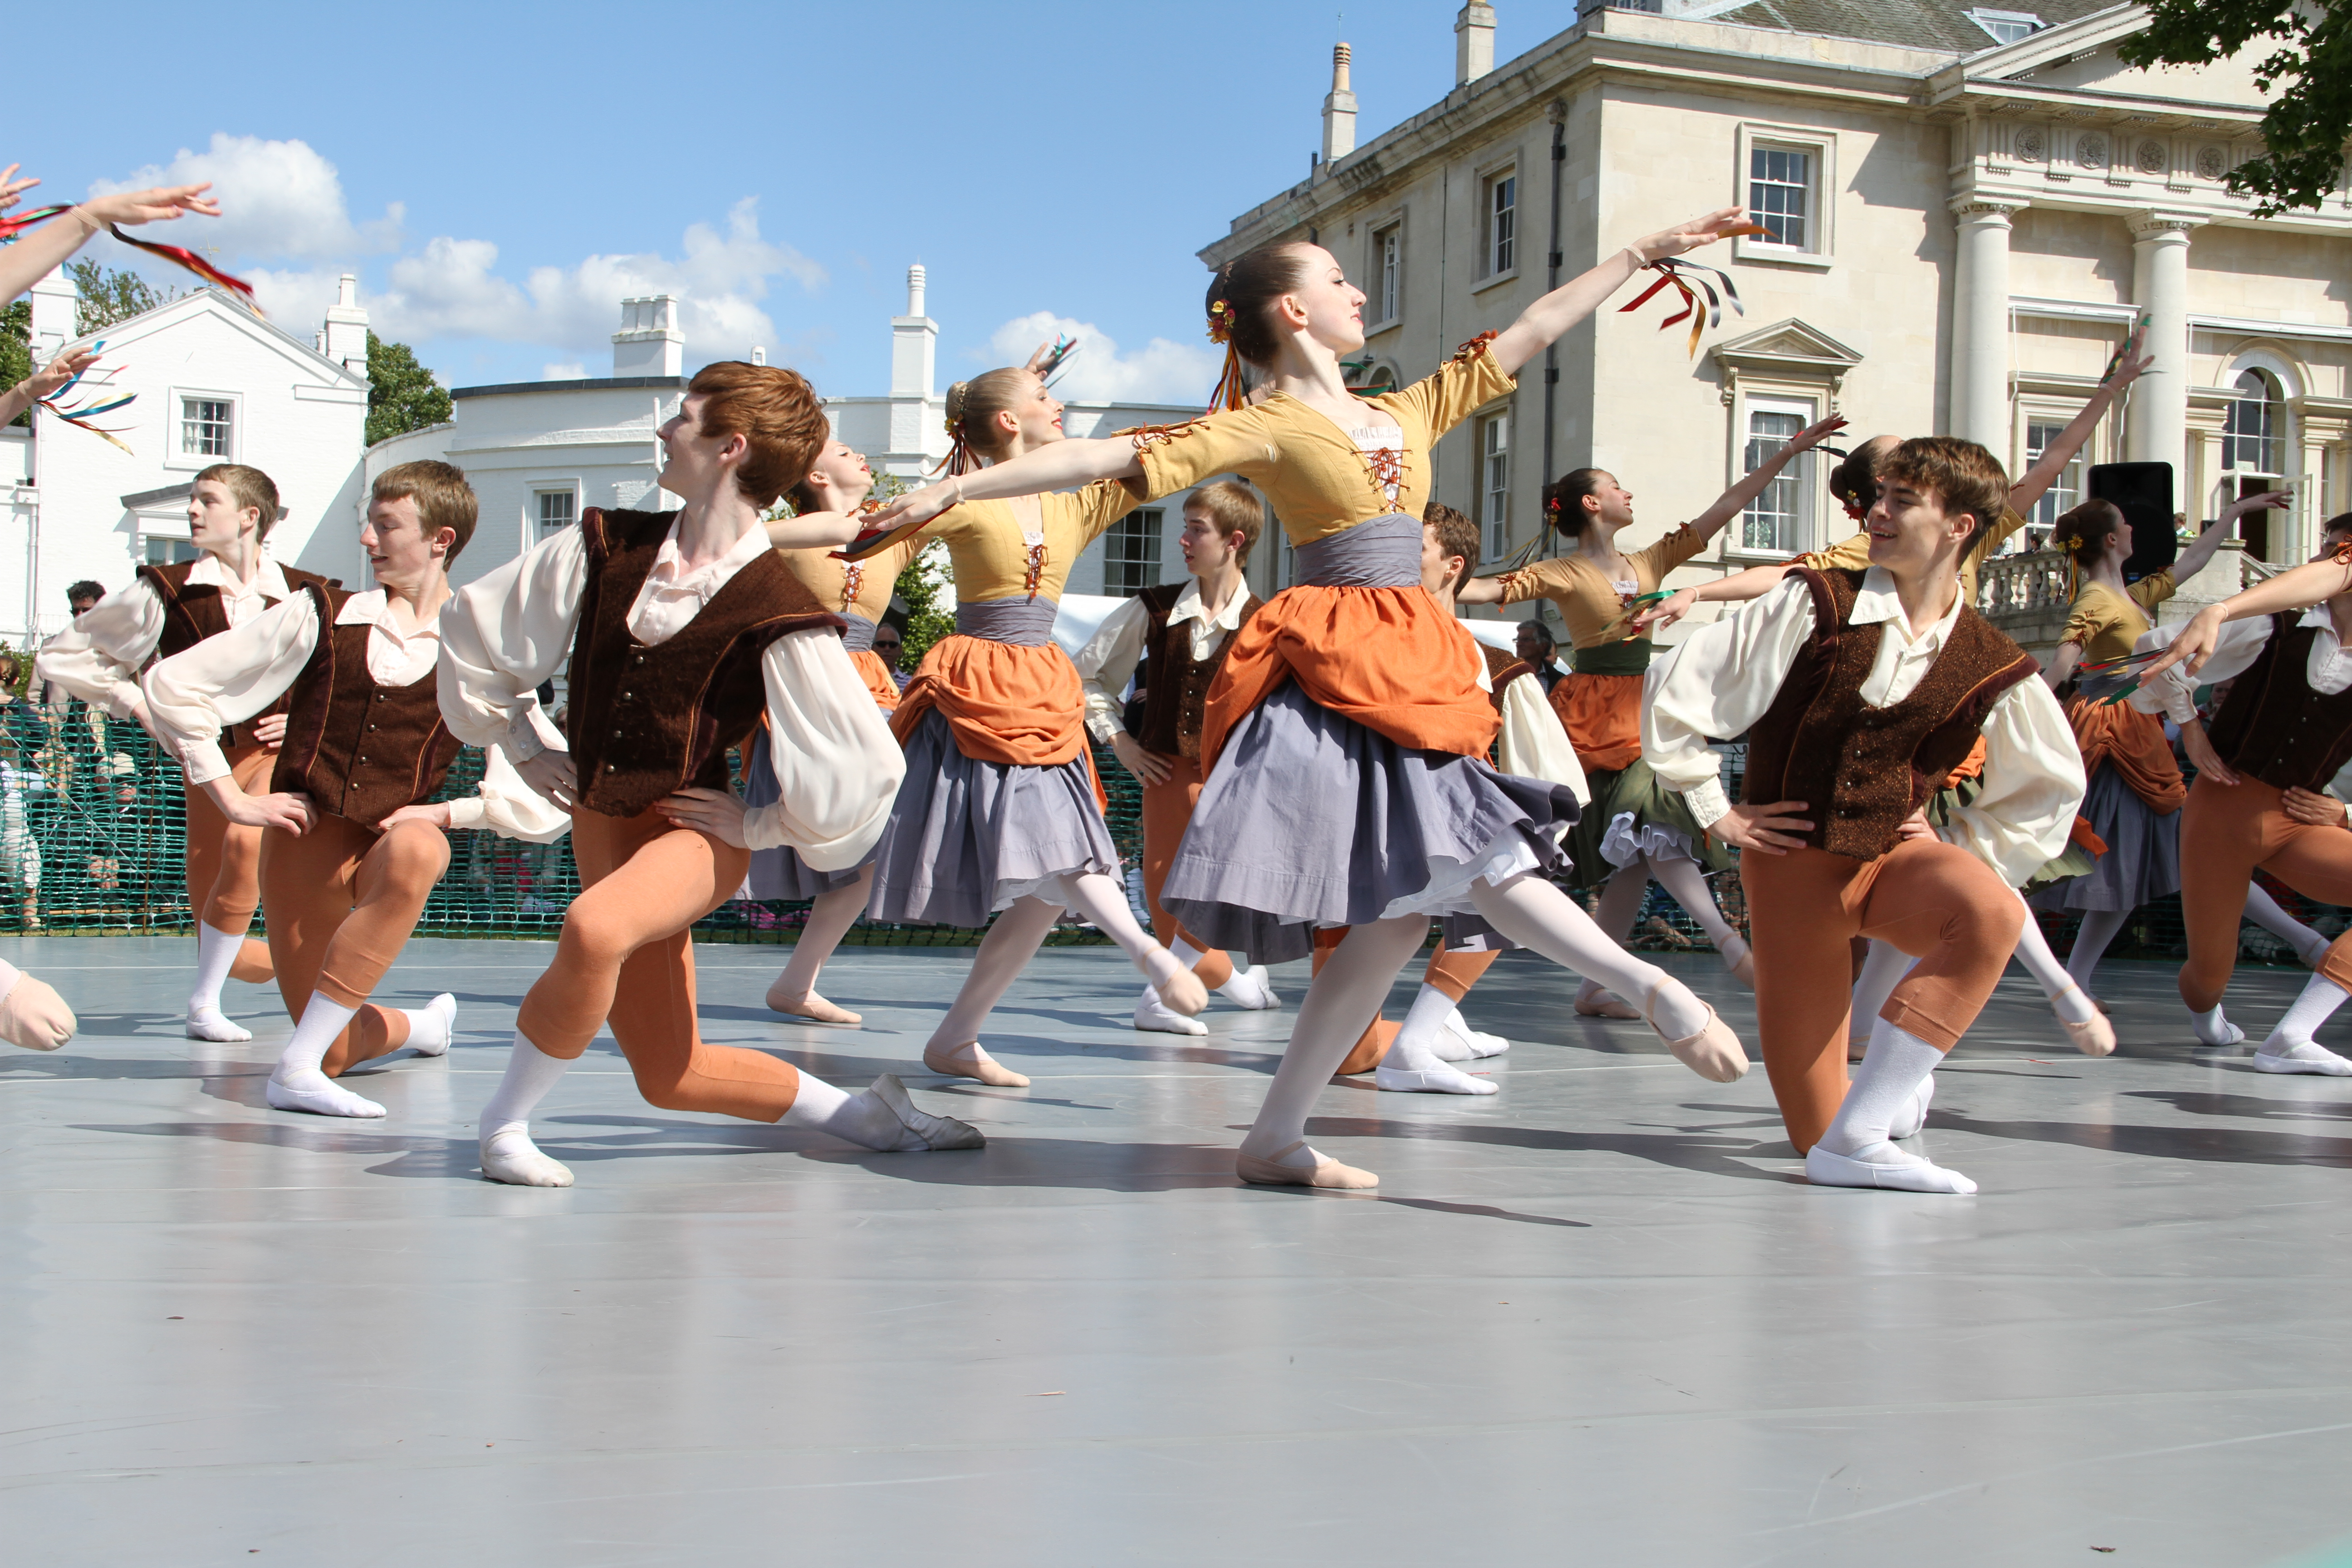 dancers perform outside on the lawn